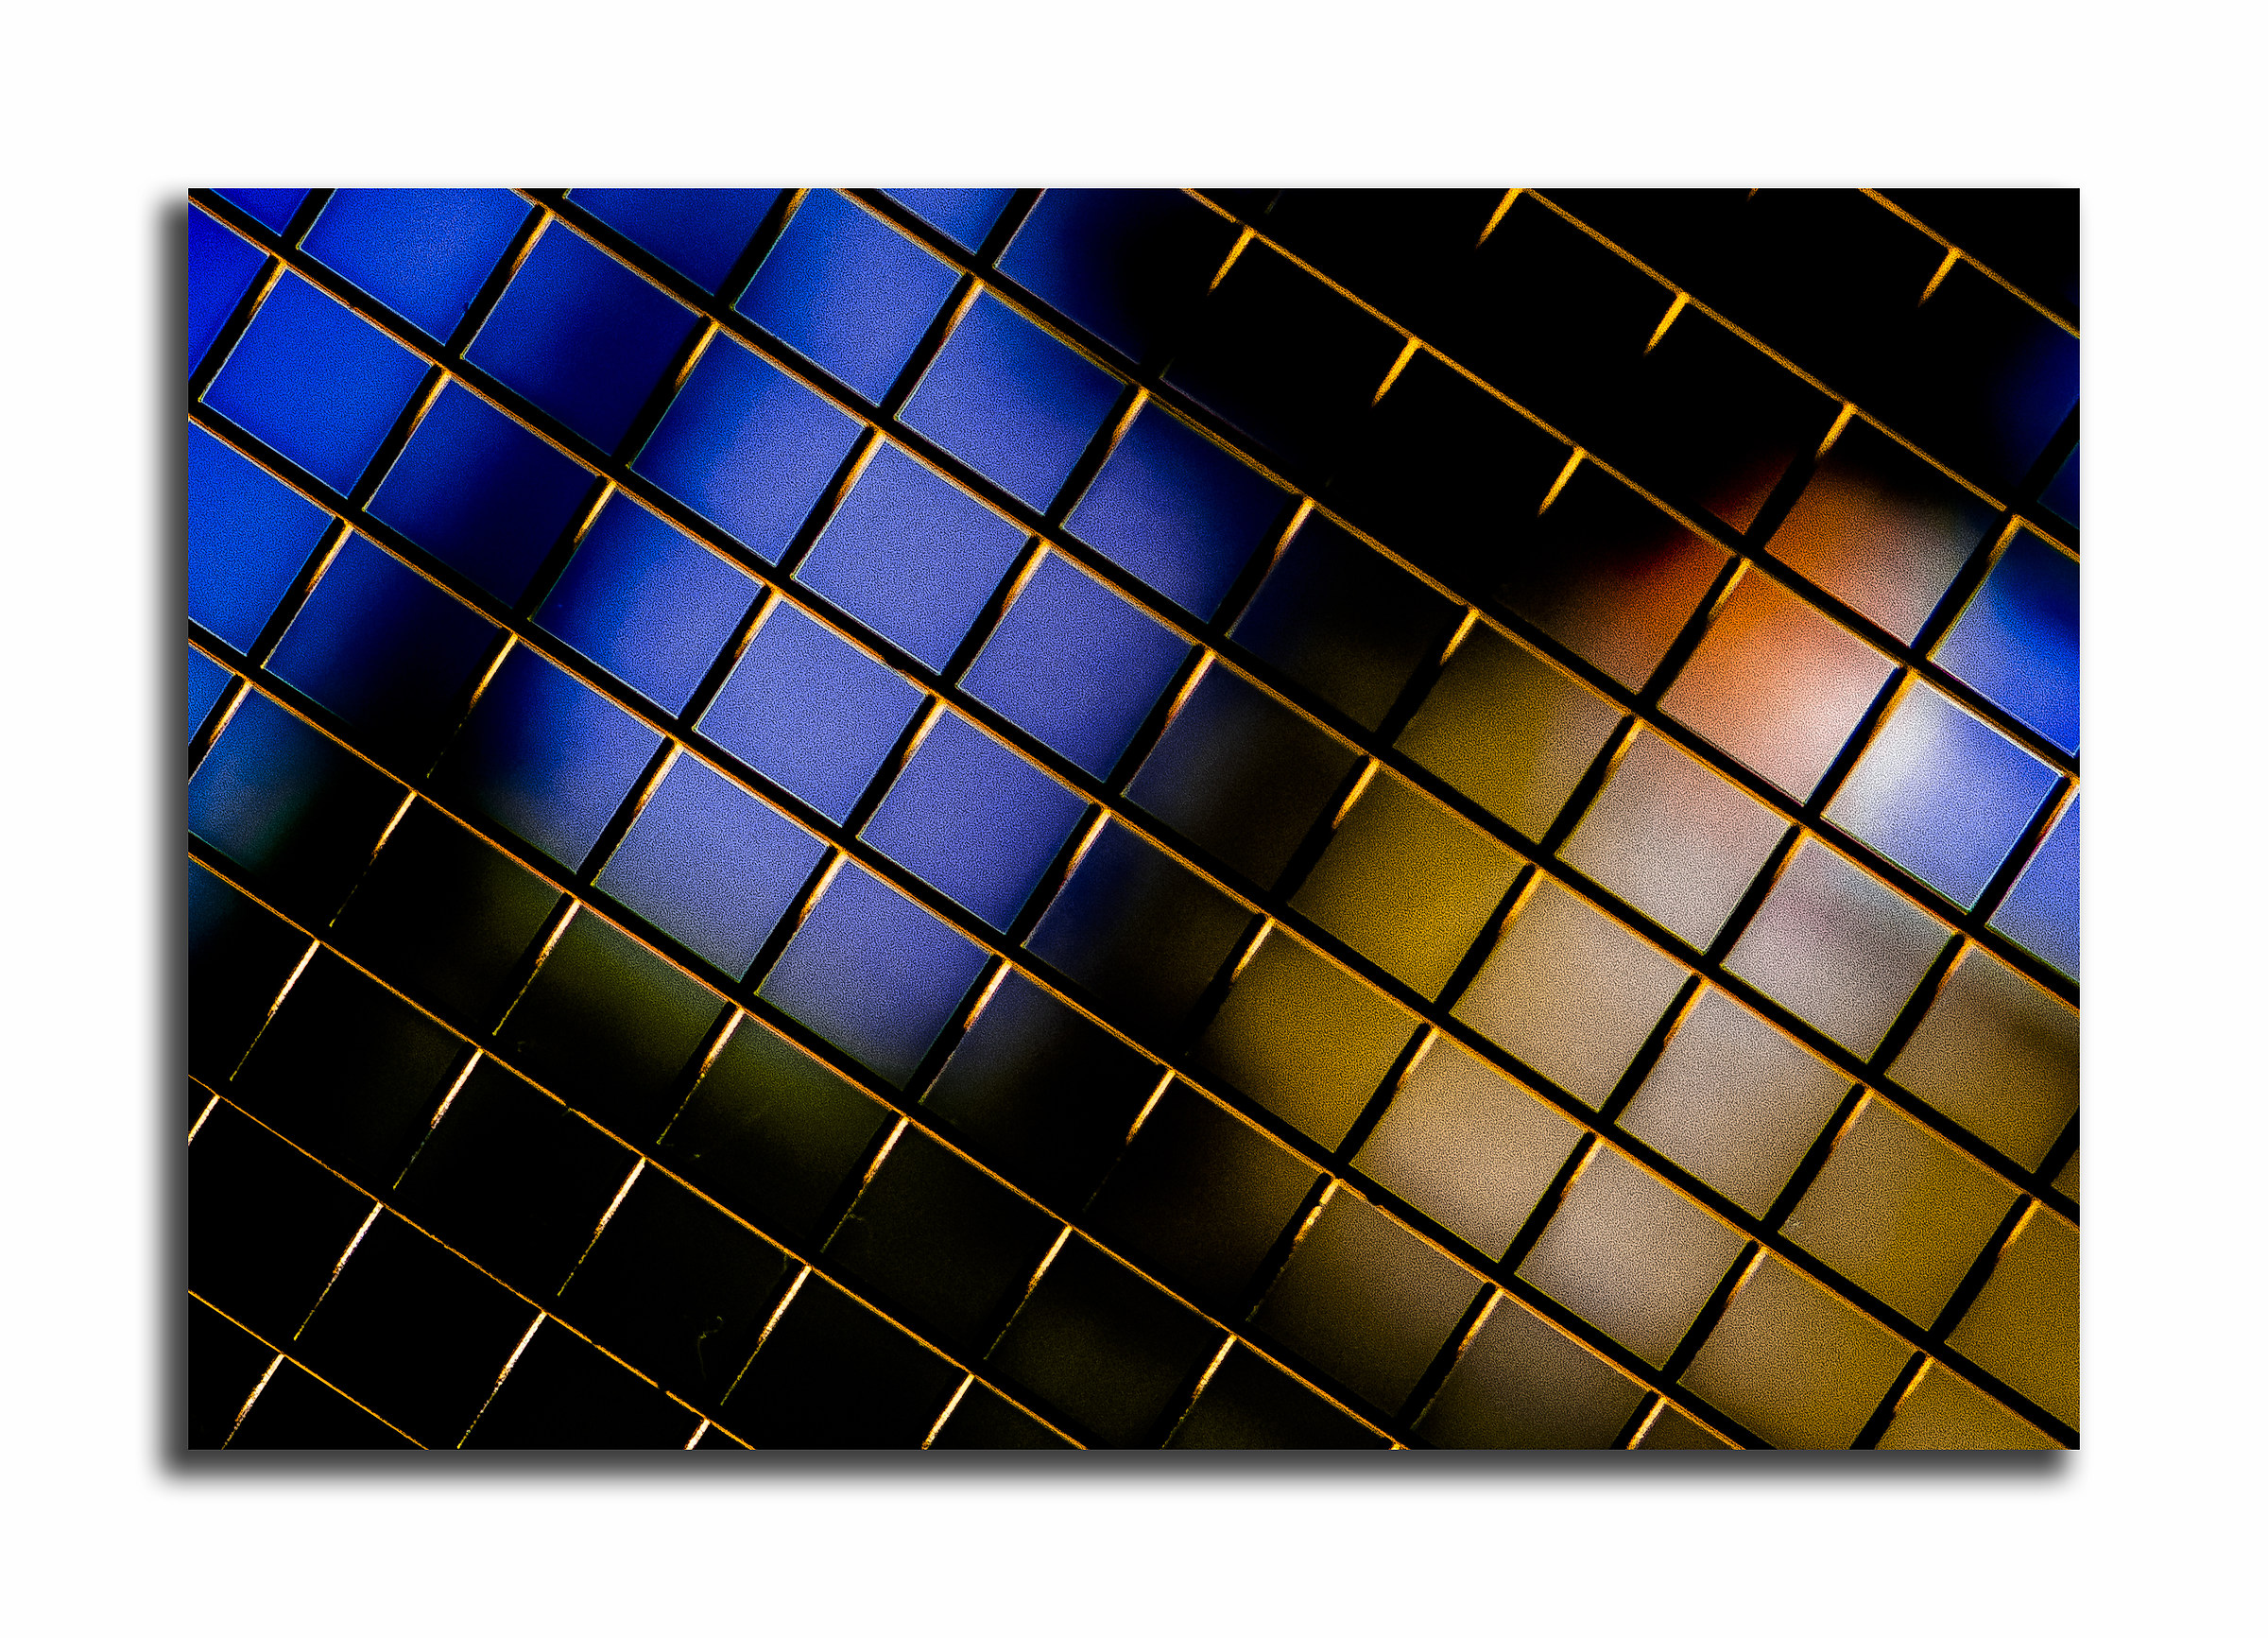 Colors in cages...